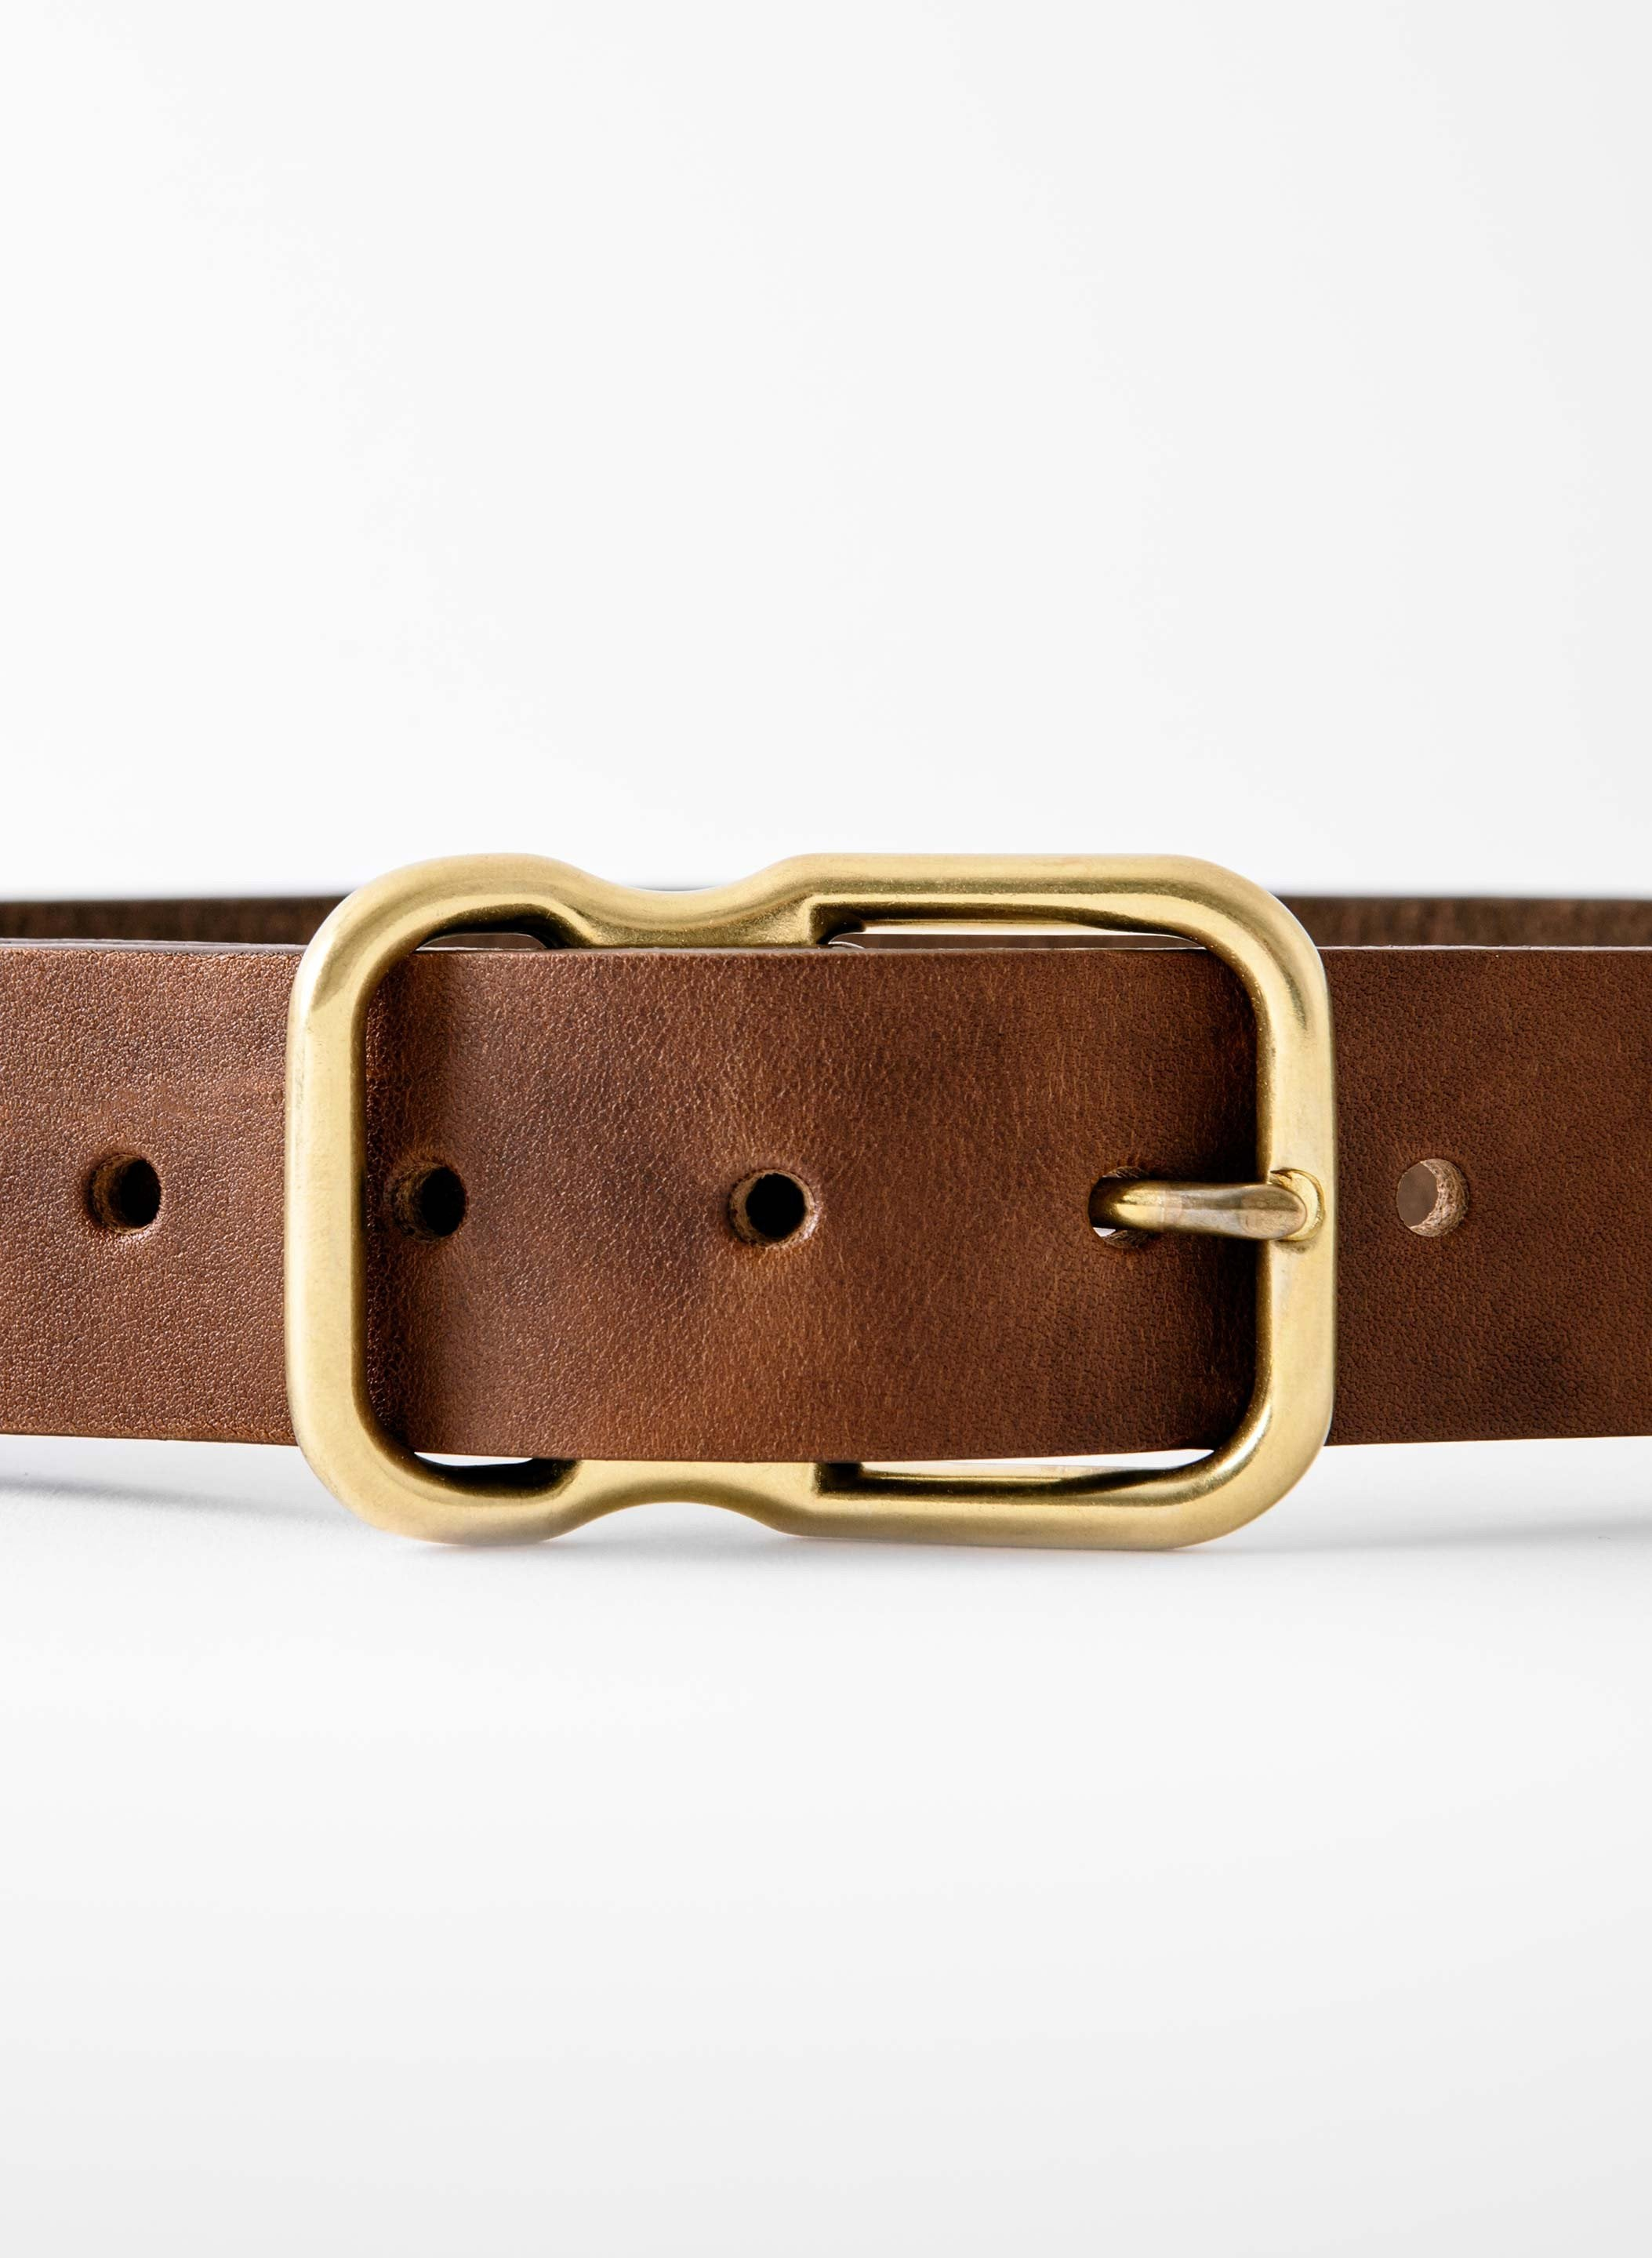 imogene + willie - Emil Erwin Signature Belt Walnut